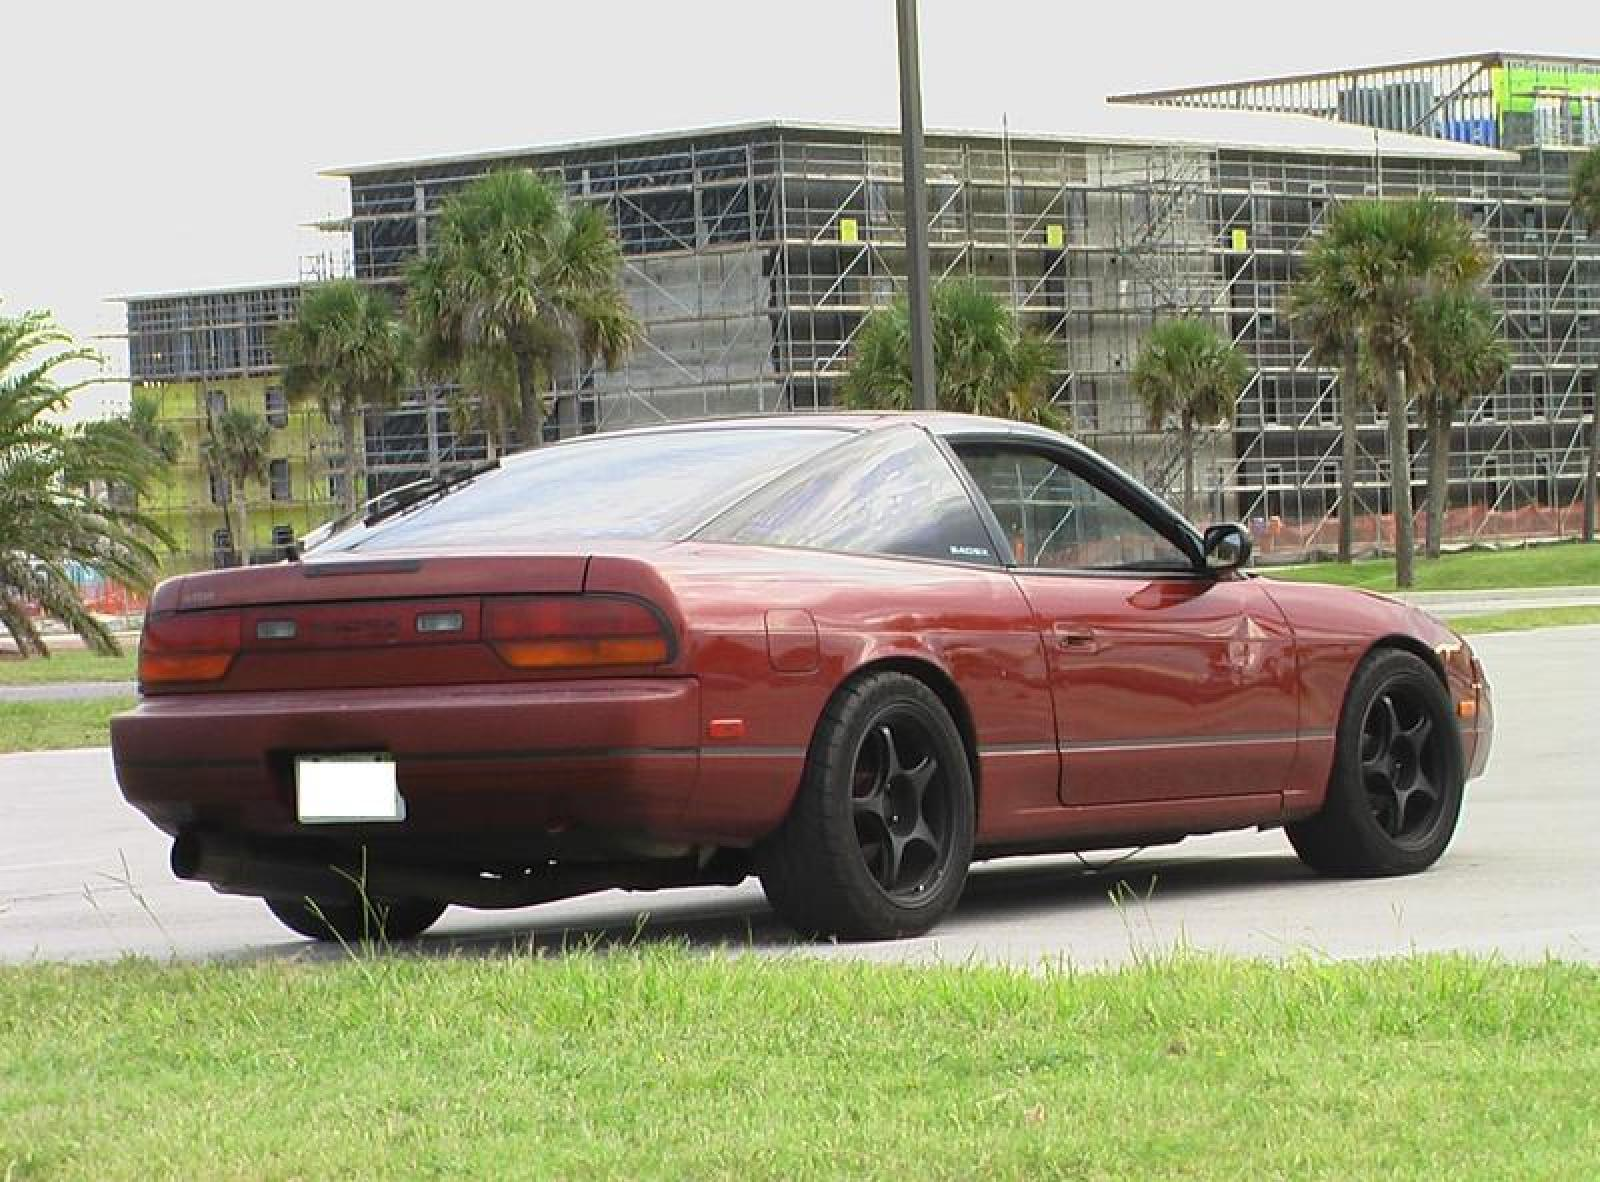 1992 nissan 240sx information and photos zombiedrive rh zombdrive com nissan 240sx manual nissan 240sx manual swap